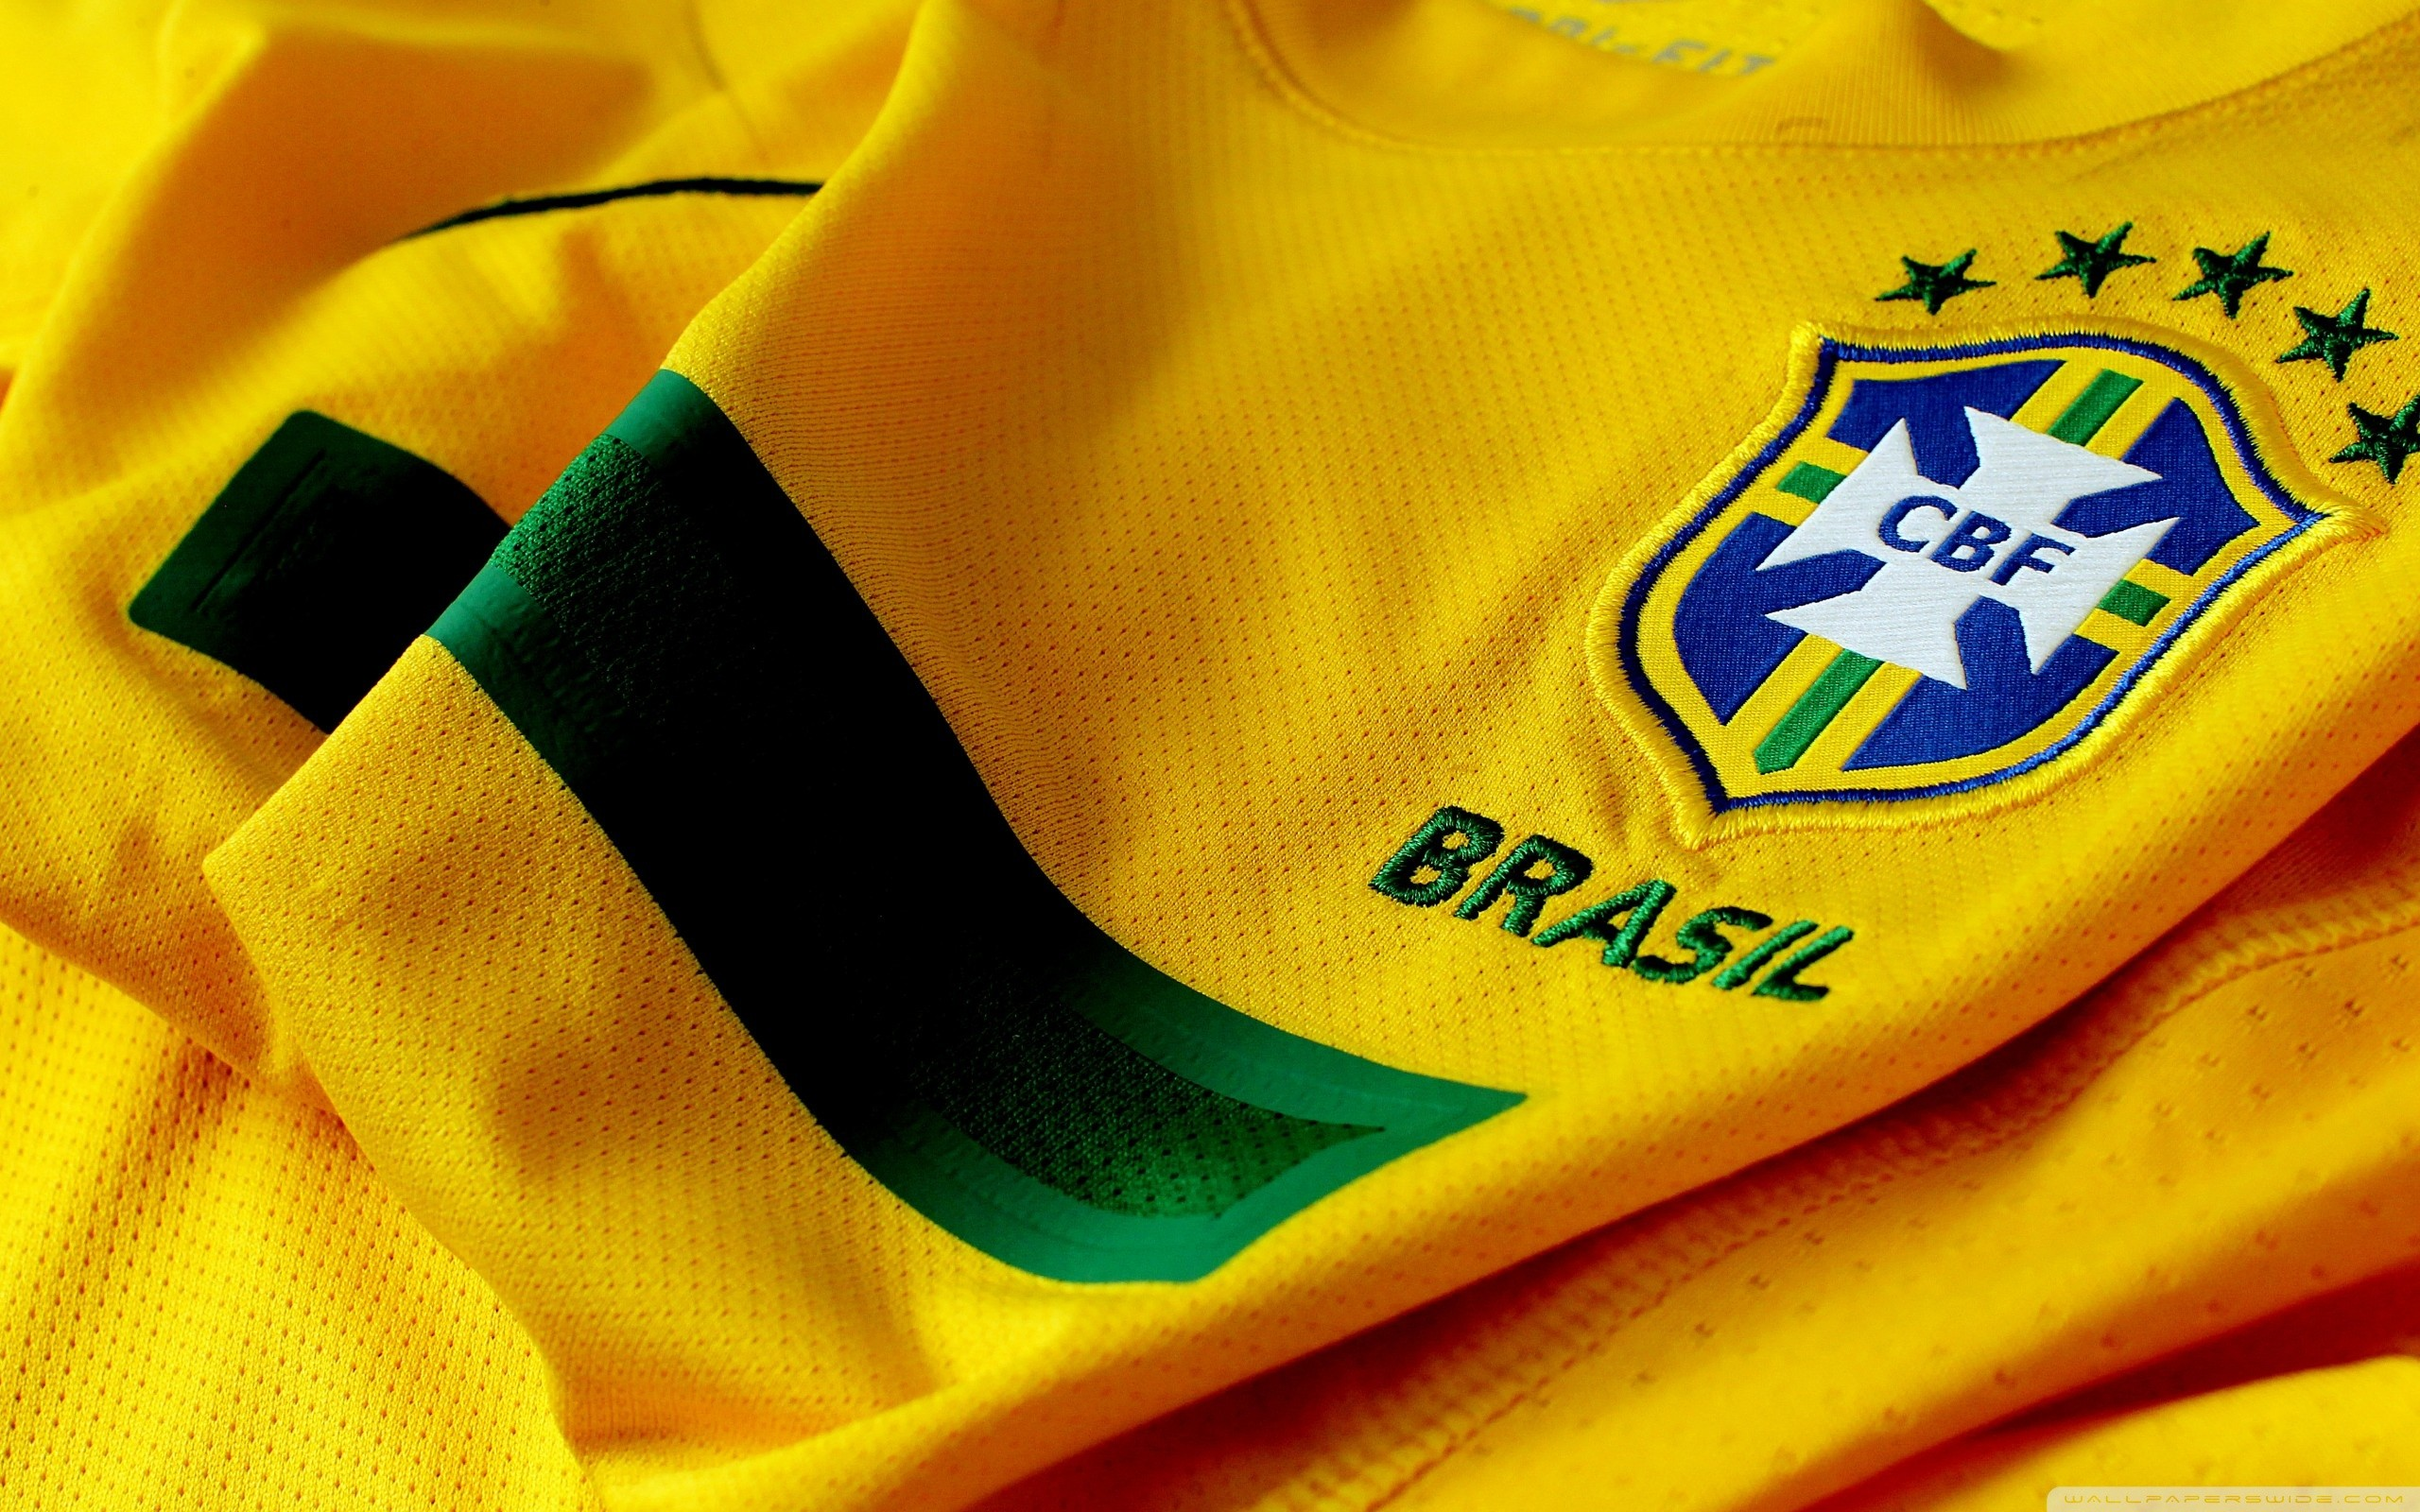 Brazil Soccer Shirt And Logo Wallpapers HD Desktop and 2560x1600